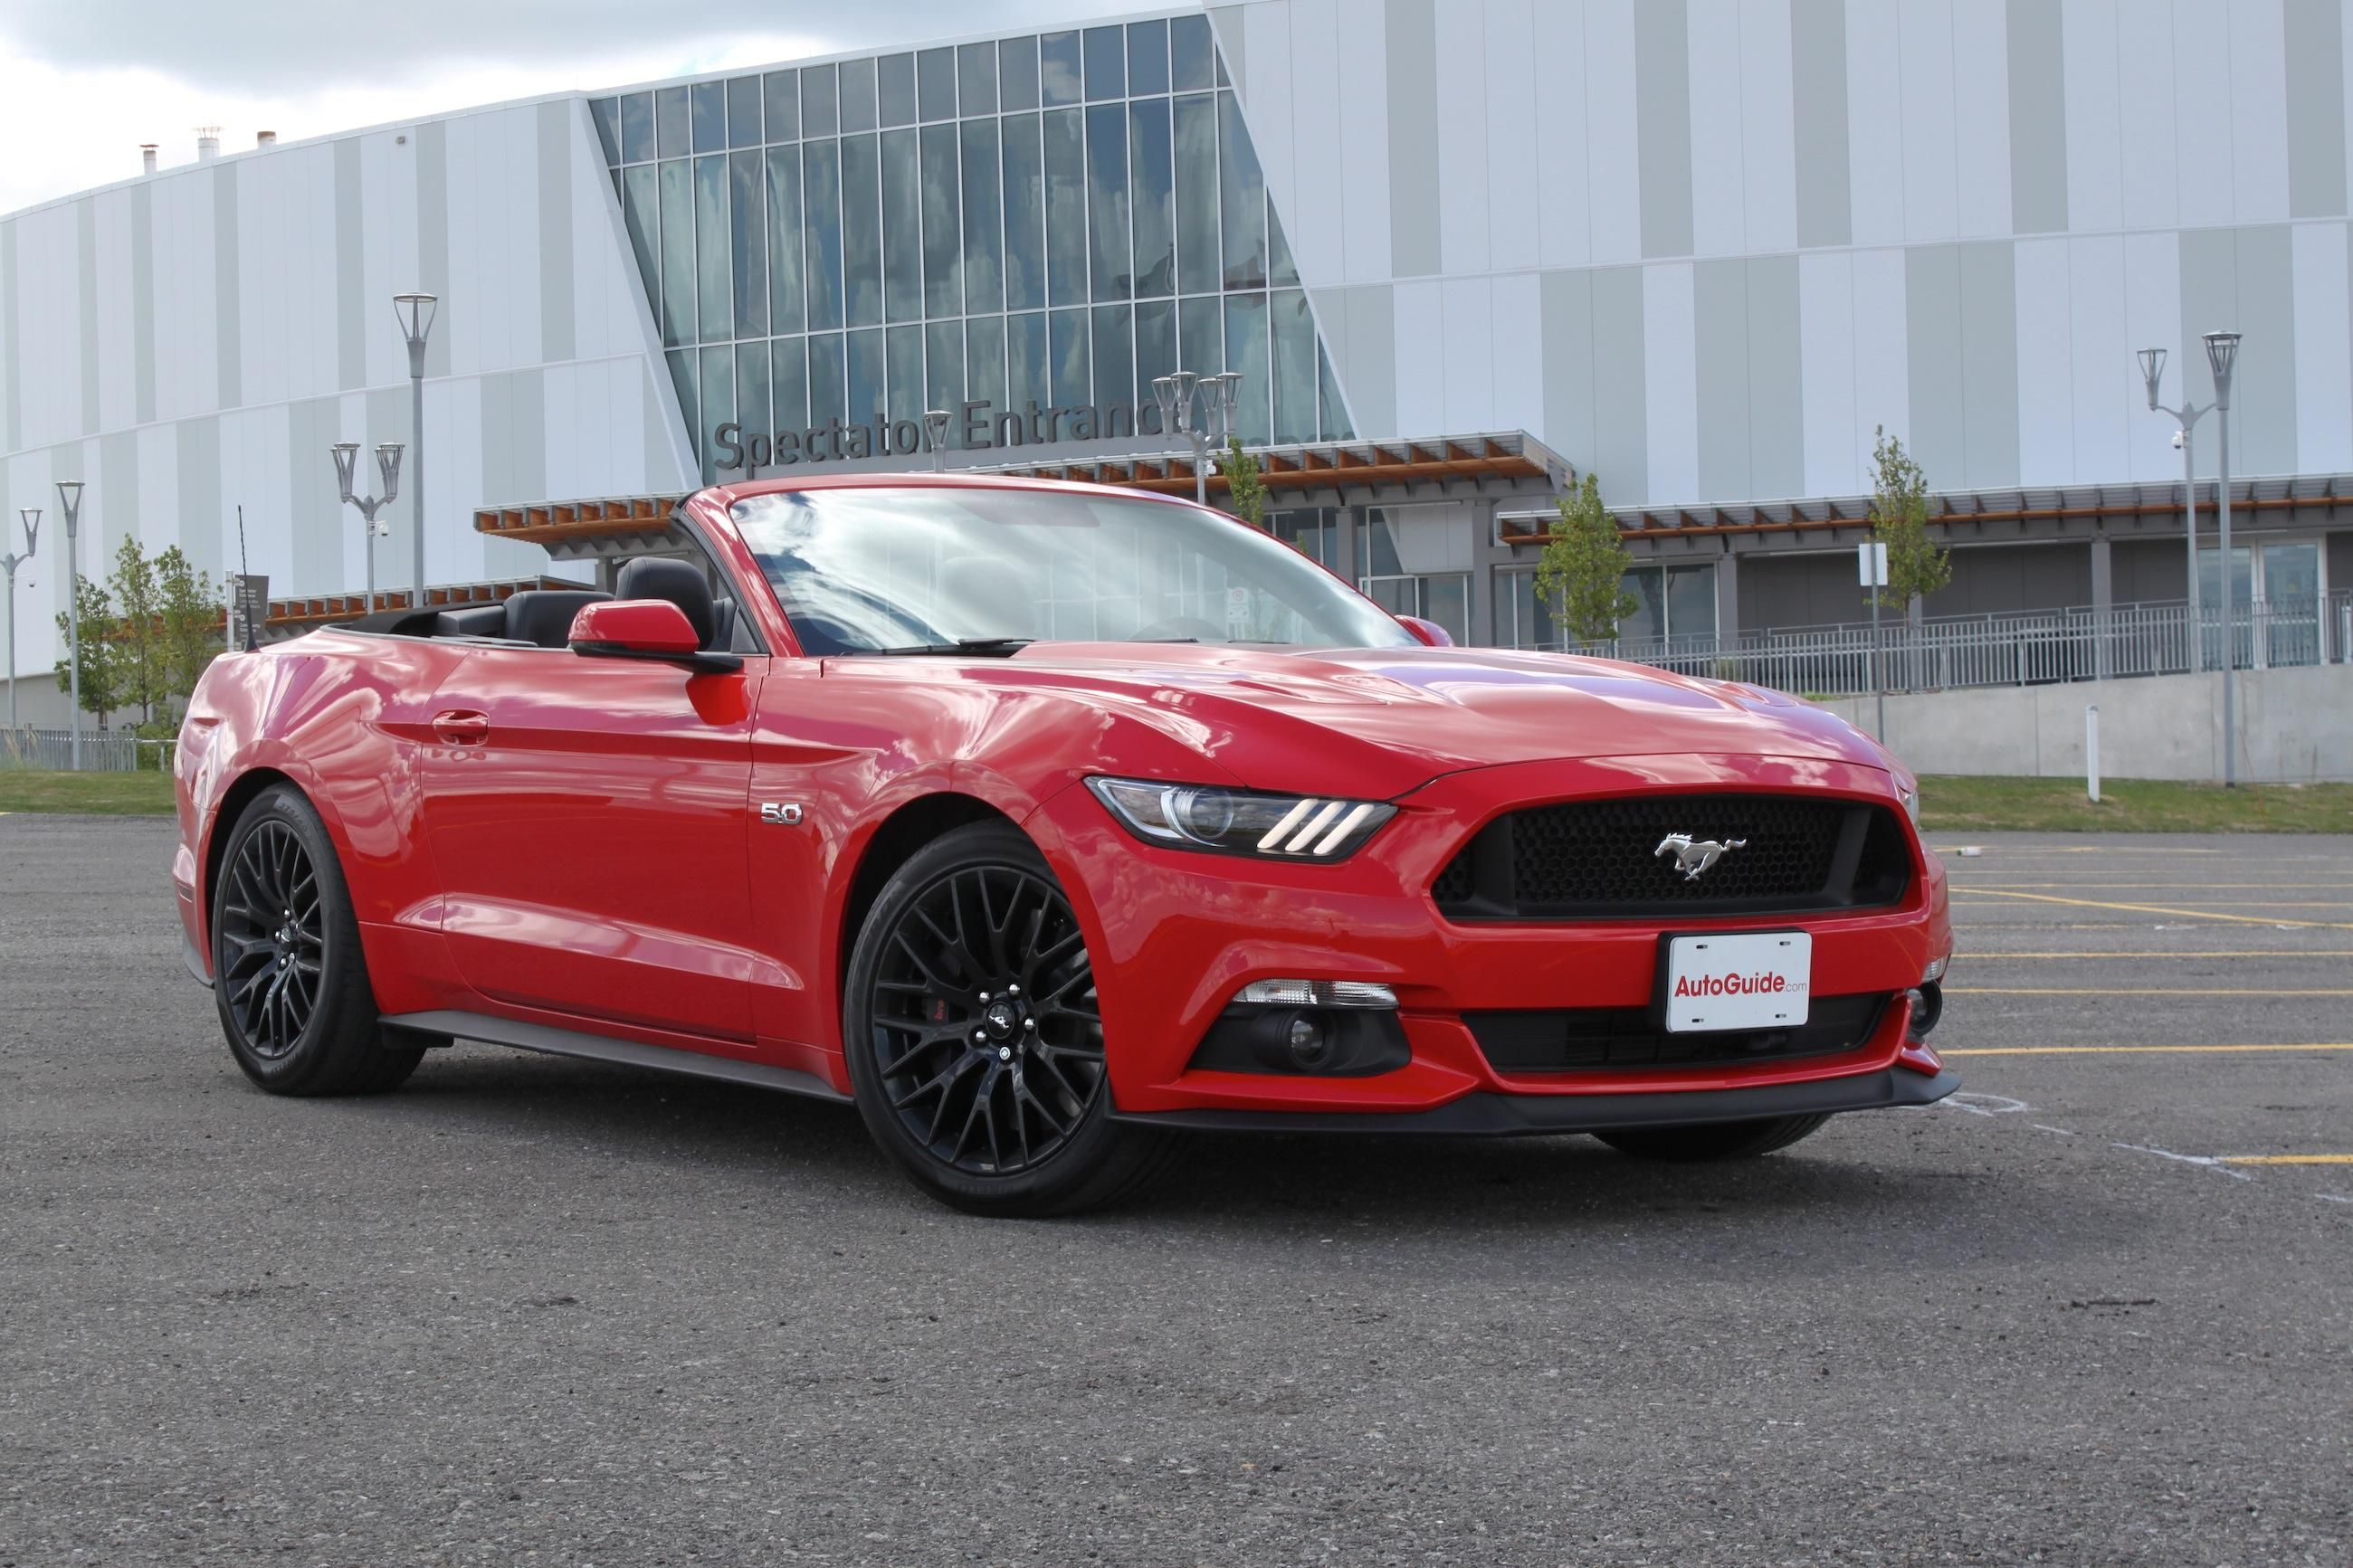 Ford Mustang Gt Convertible 2017 Red 2600x1733 Modelle